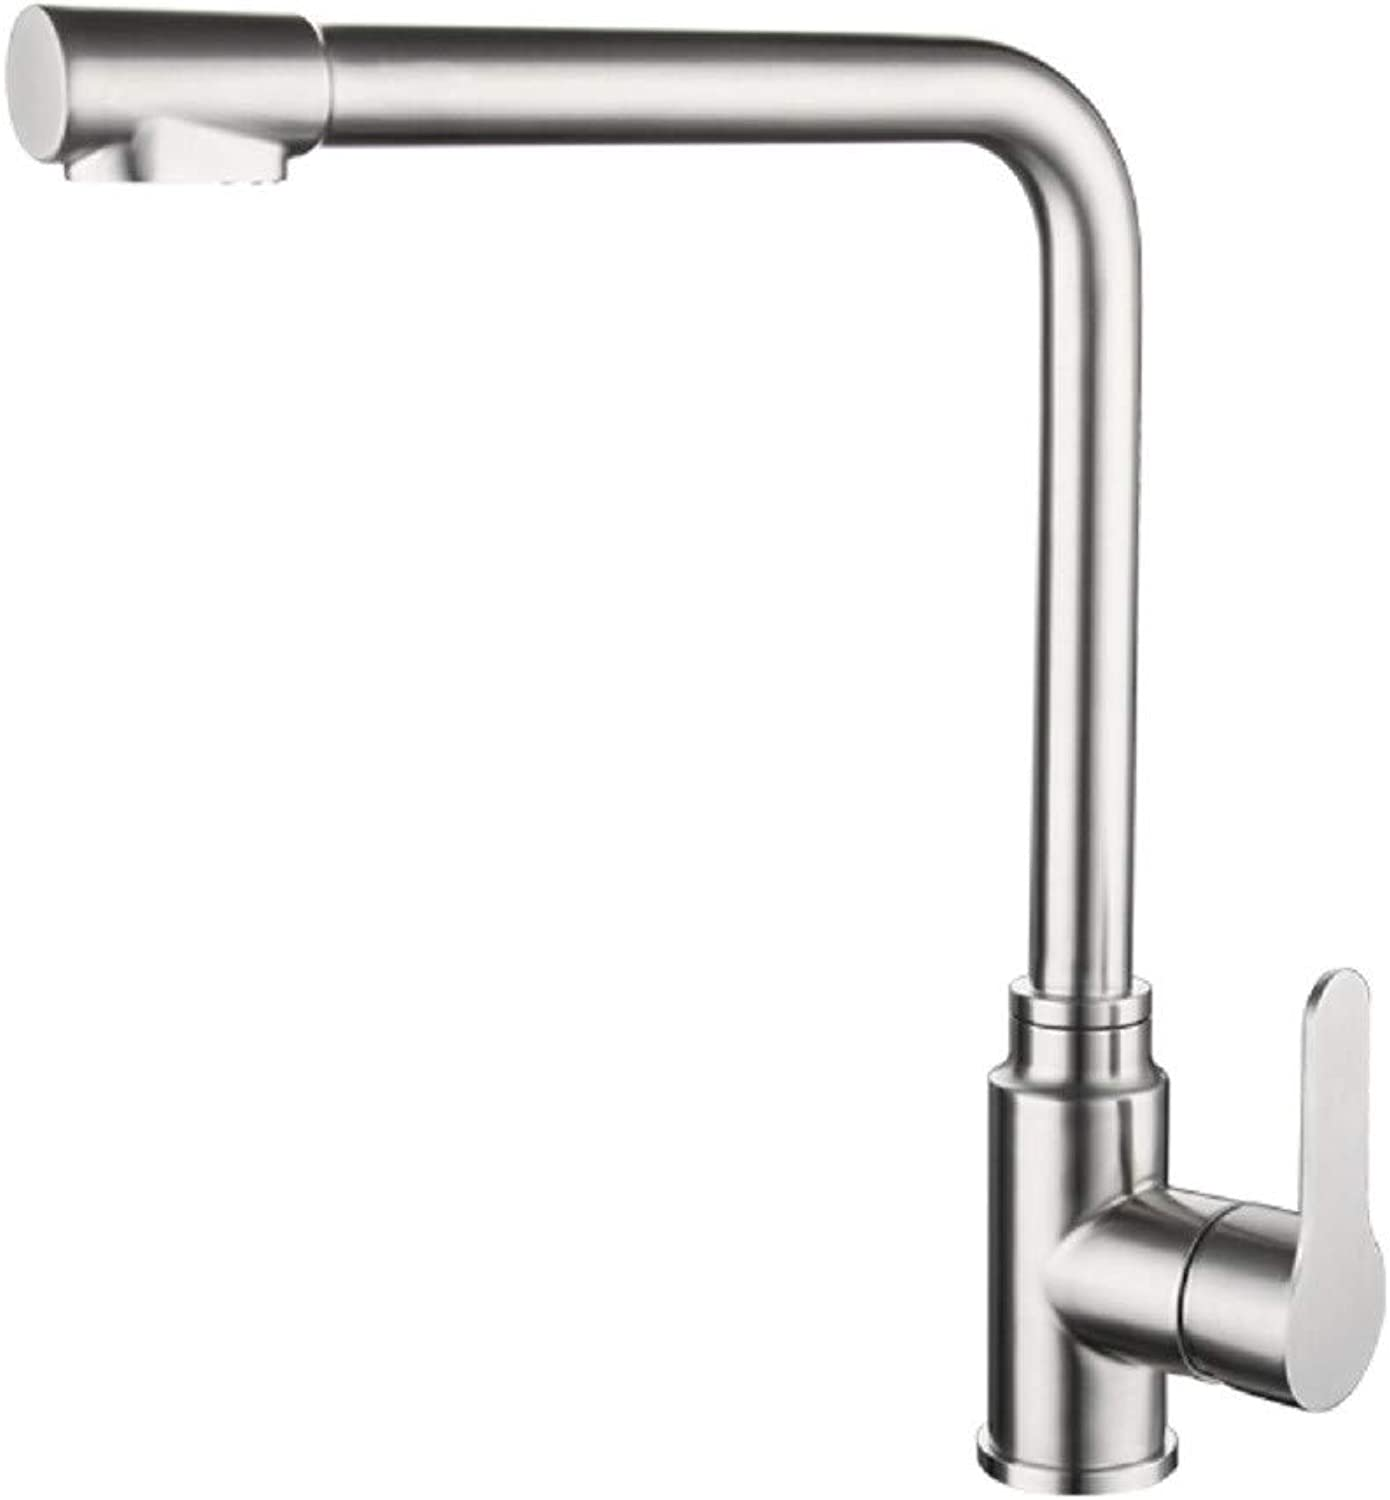 Kitchen Tap Pure Water Washing Vegetable Basin Tank Cold and Hot Out Kitchen Taps Kitchen Sink Mixer Taps Basin Tap